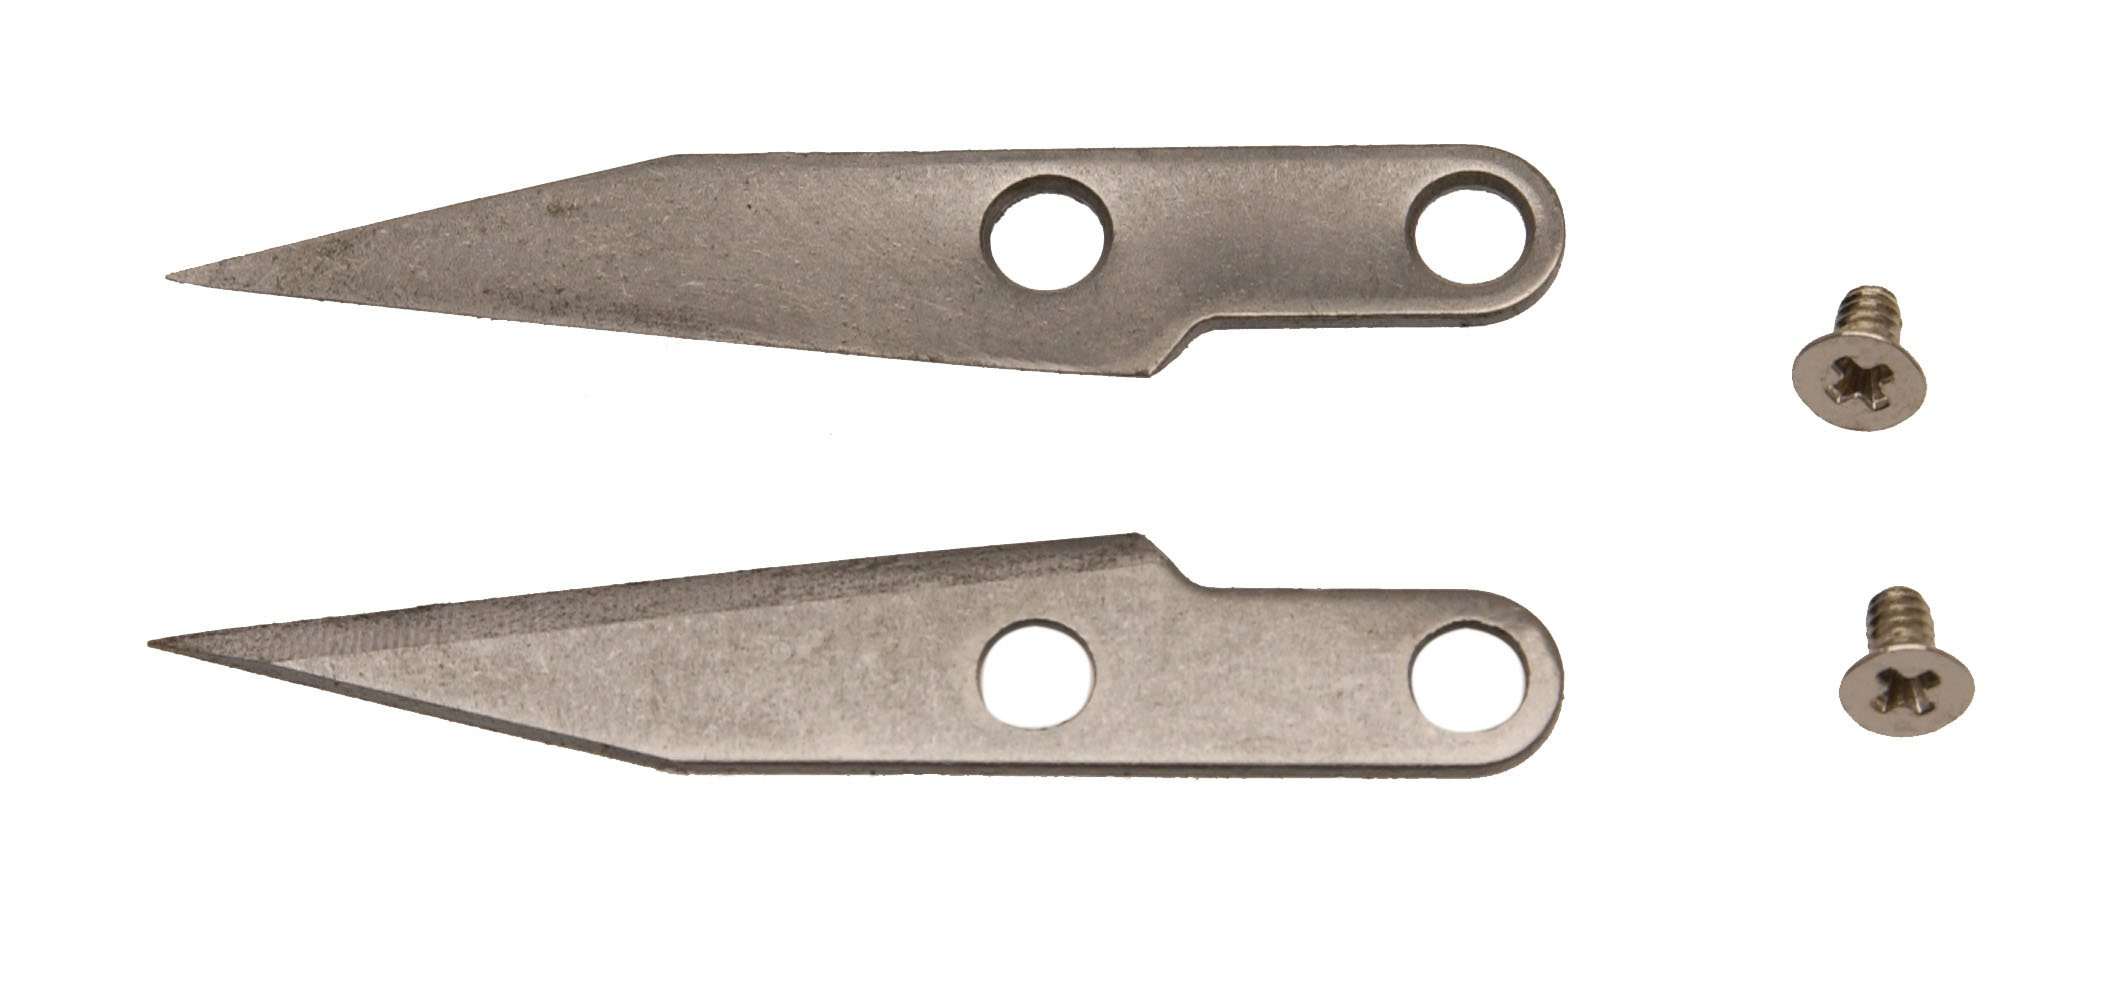 Wiss 9328 1570B Replacement Blades For Quick-Clip Lightweight Speed Cutters( Set of 10 blades)